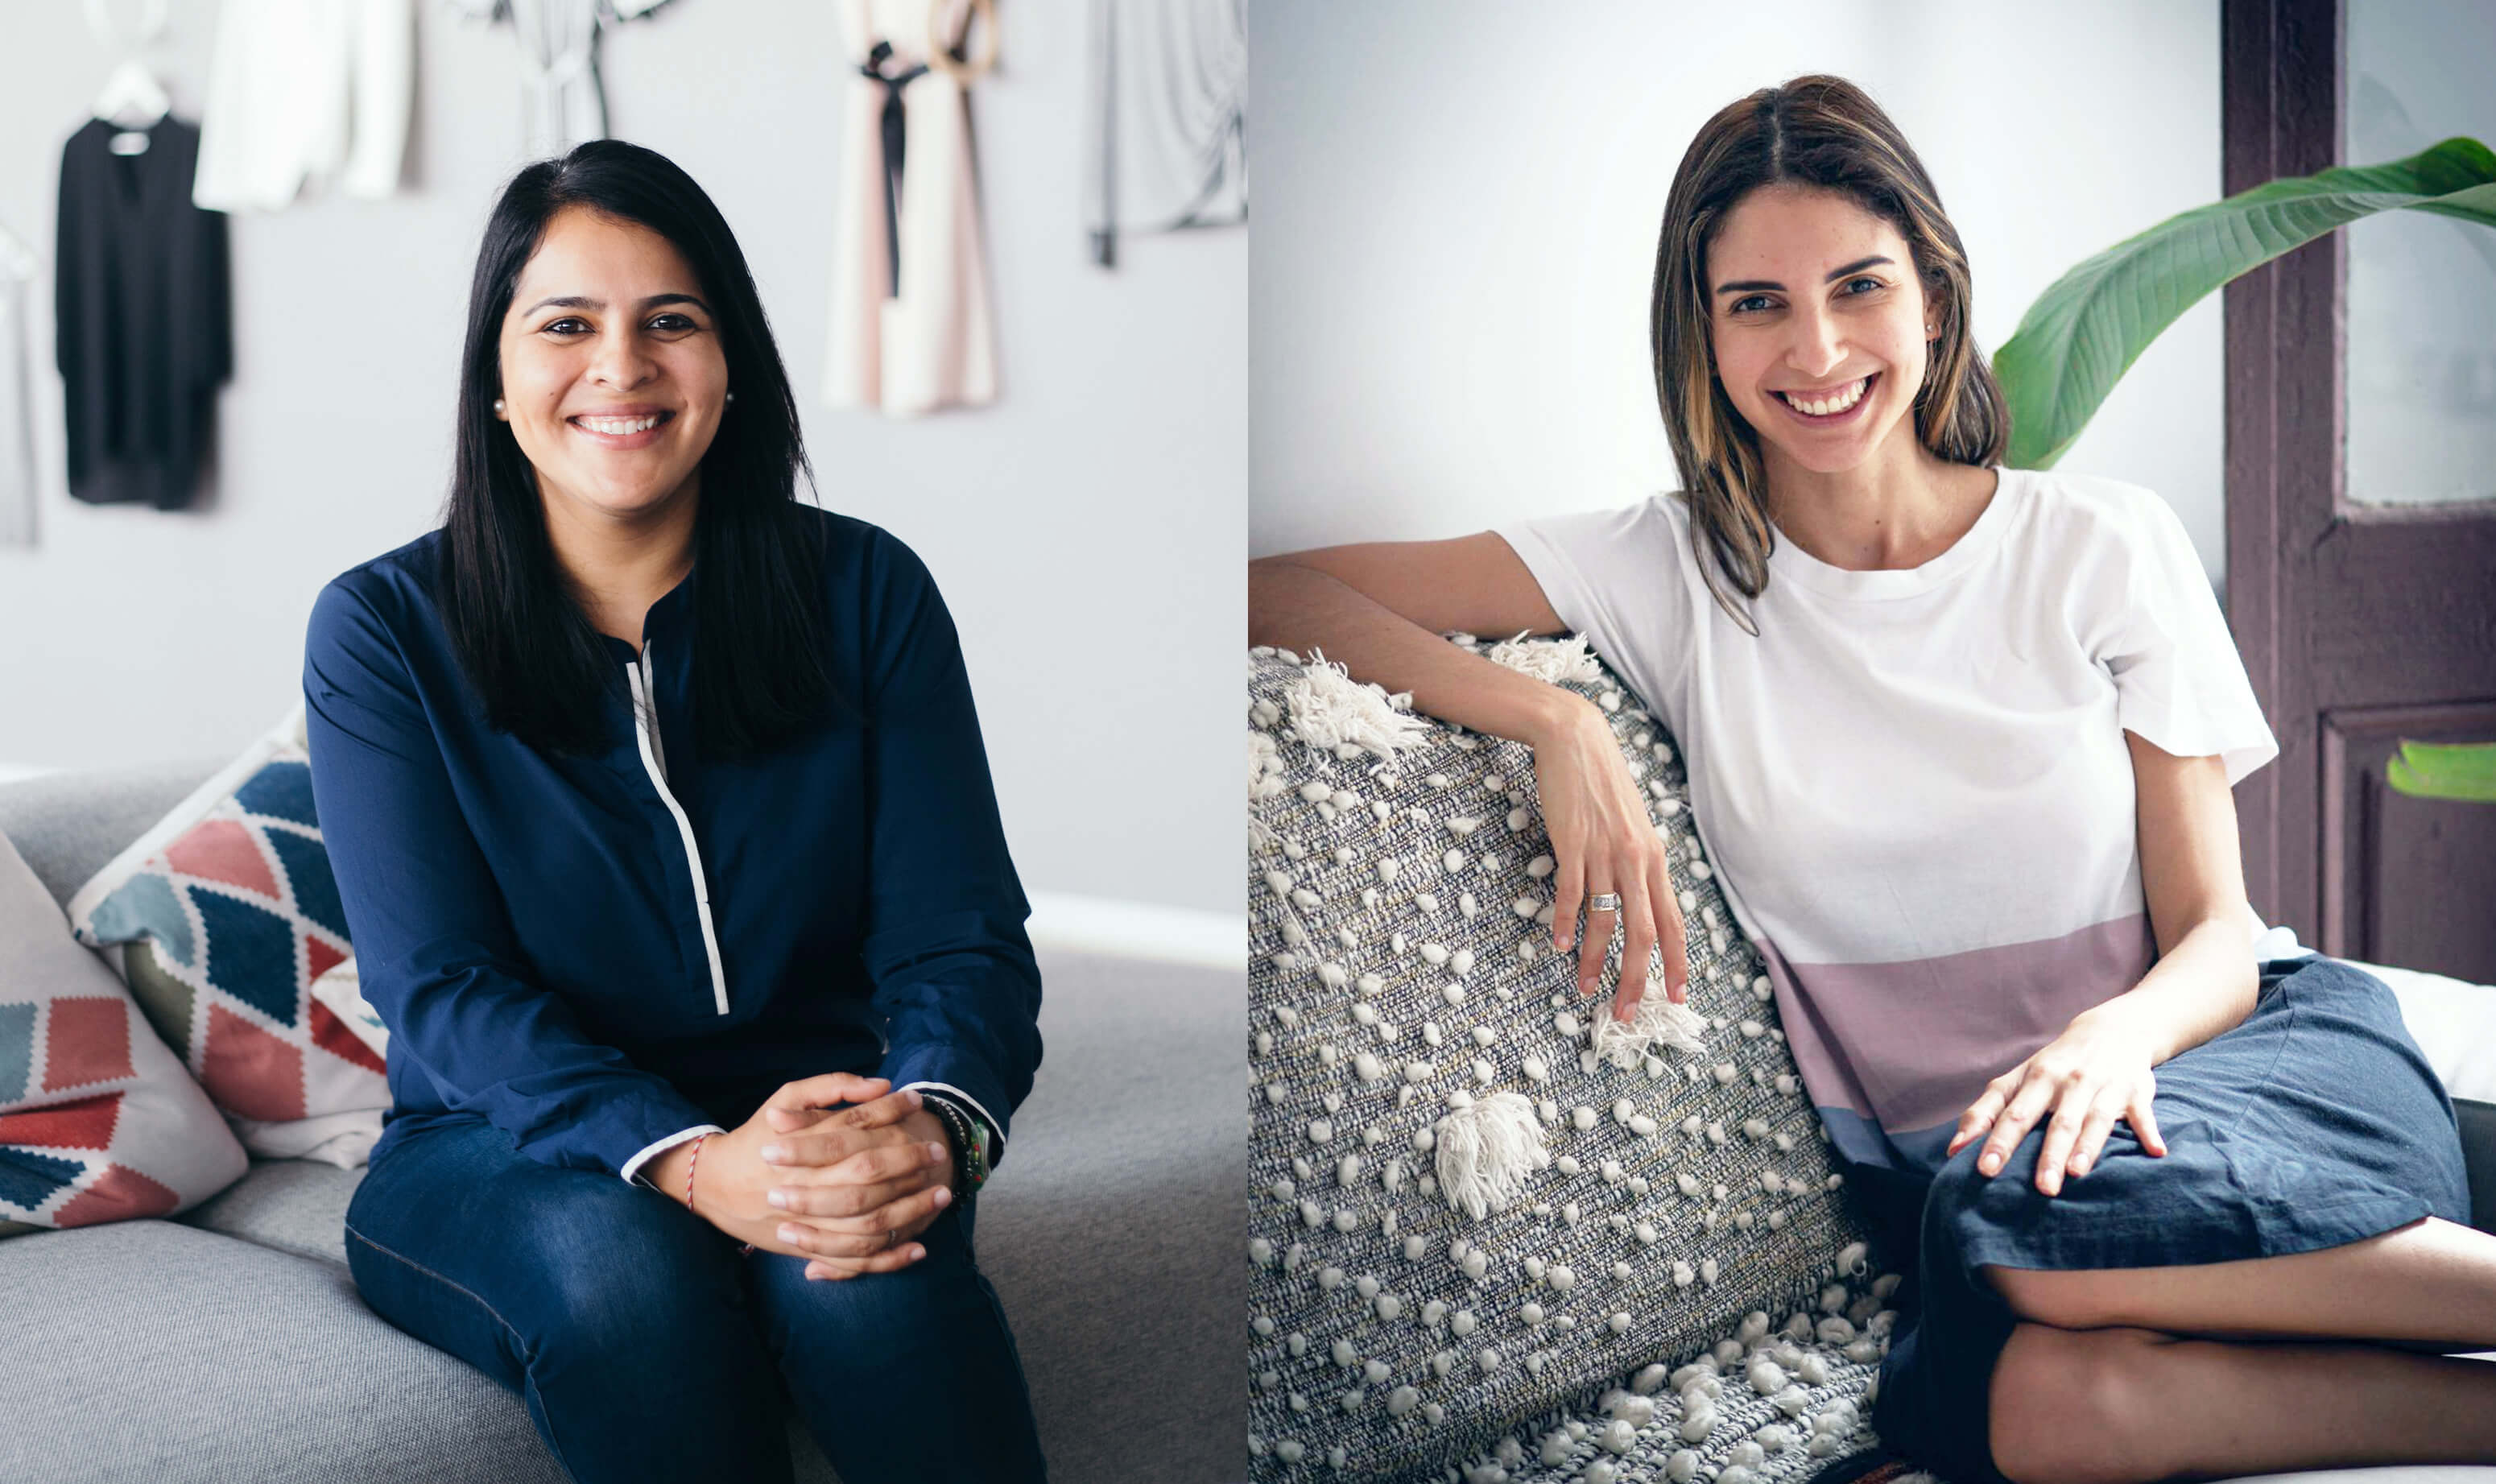 portrait photos of two women with dark hair in front of light walls wearing a blue jacket and a white t-shirt